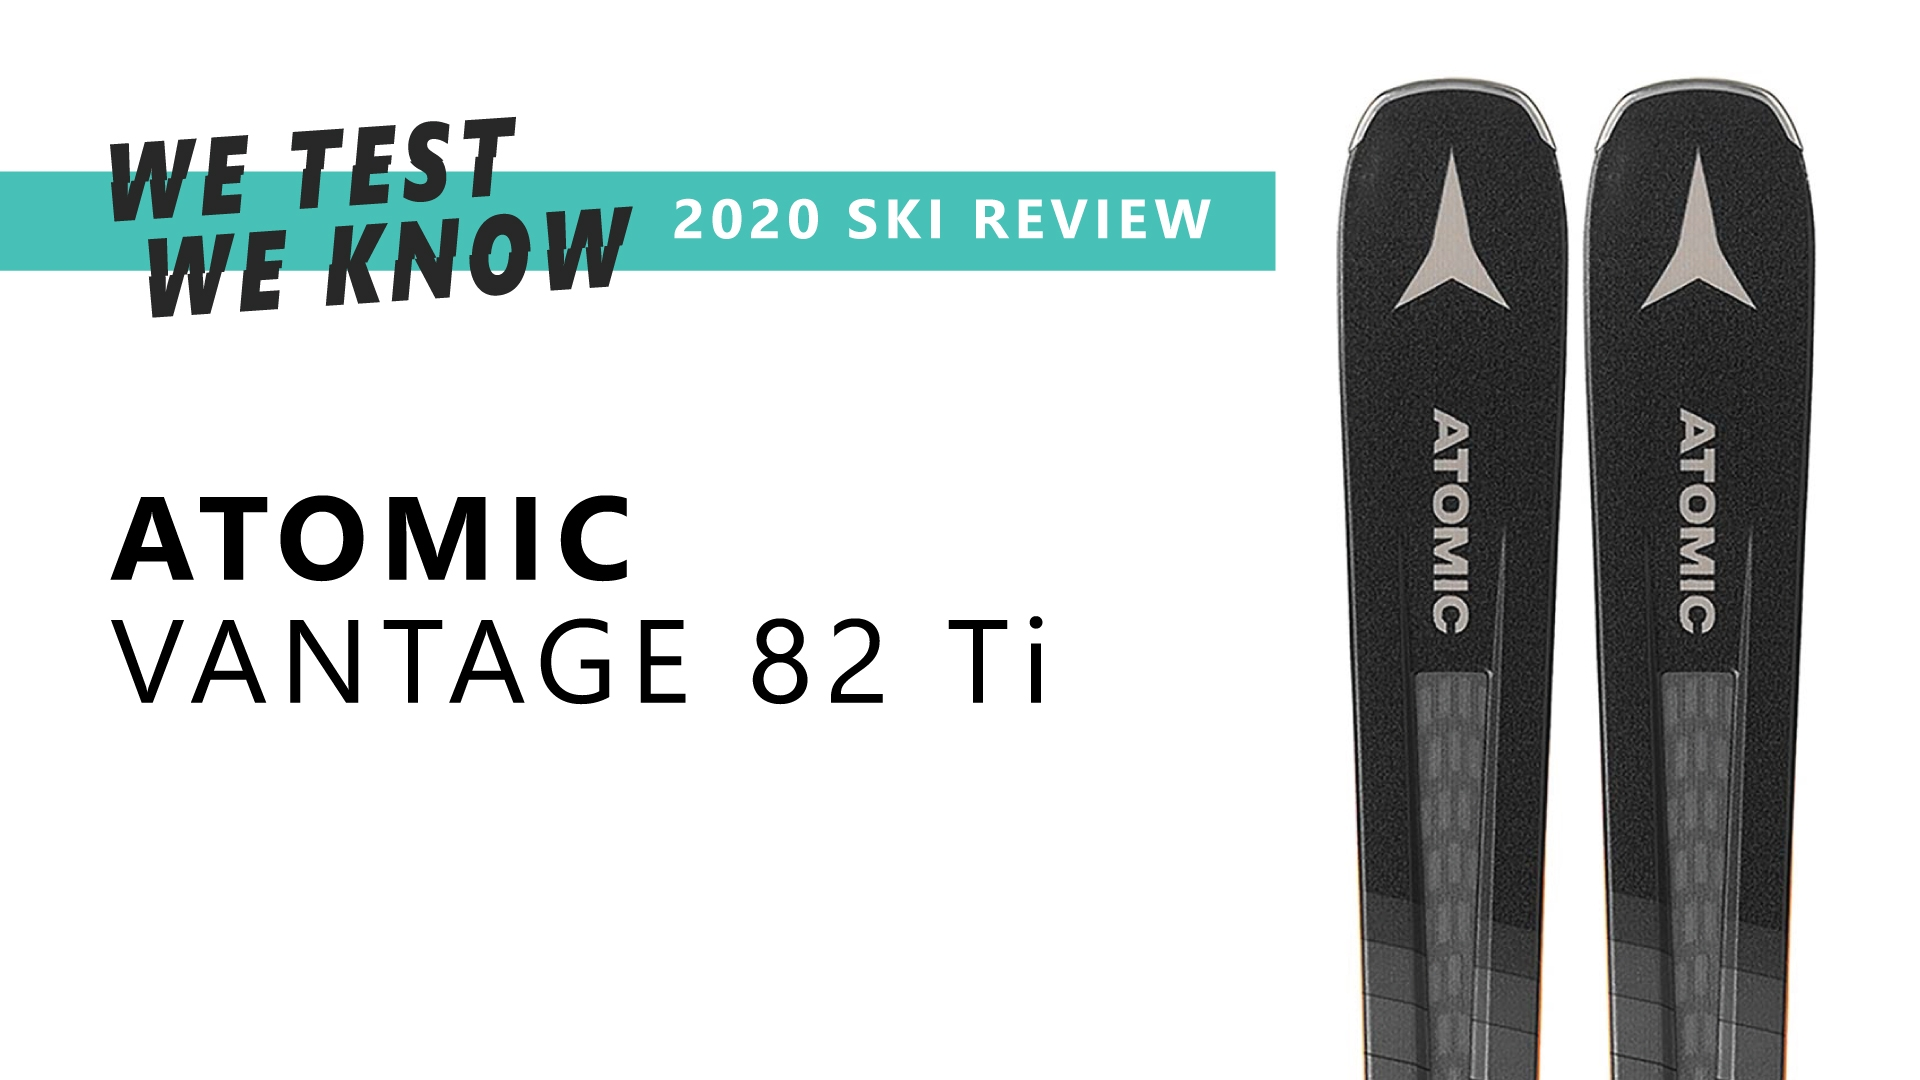 Atomic Vantage 82 Ti - 2020 Ski Review